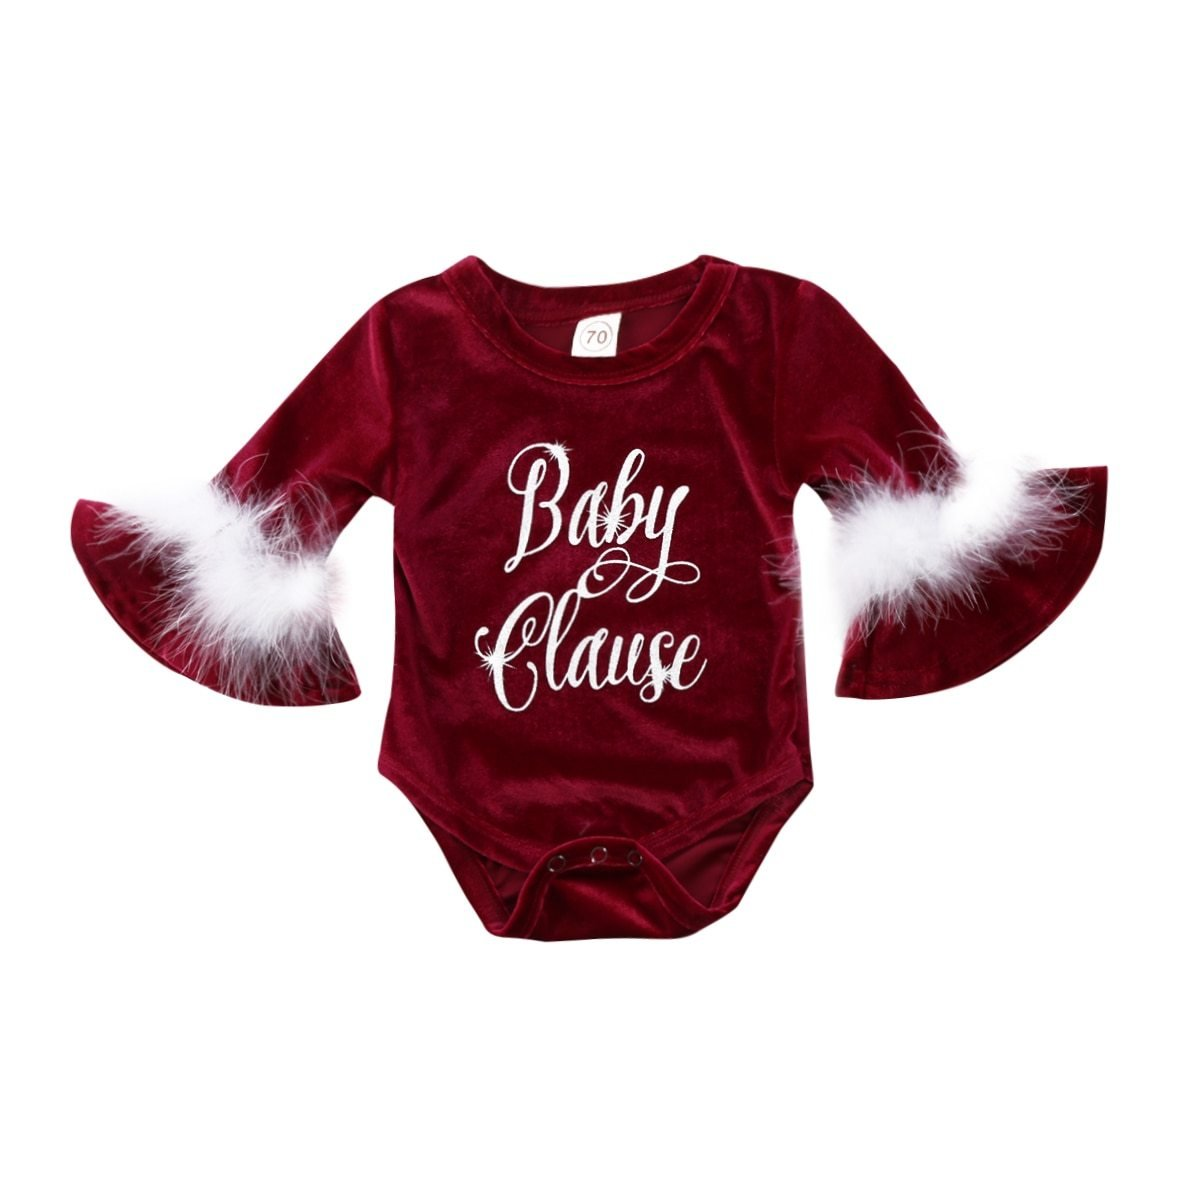 Christmas Baby Girl Pleuche Romper - Baby Clause - Maraya's Marketplace